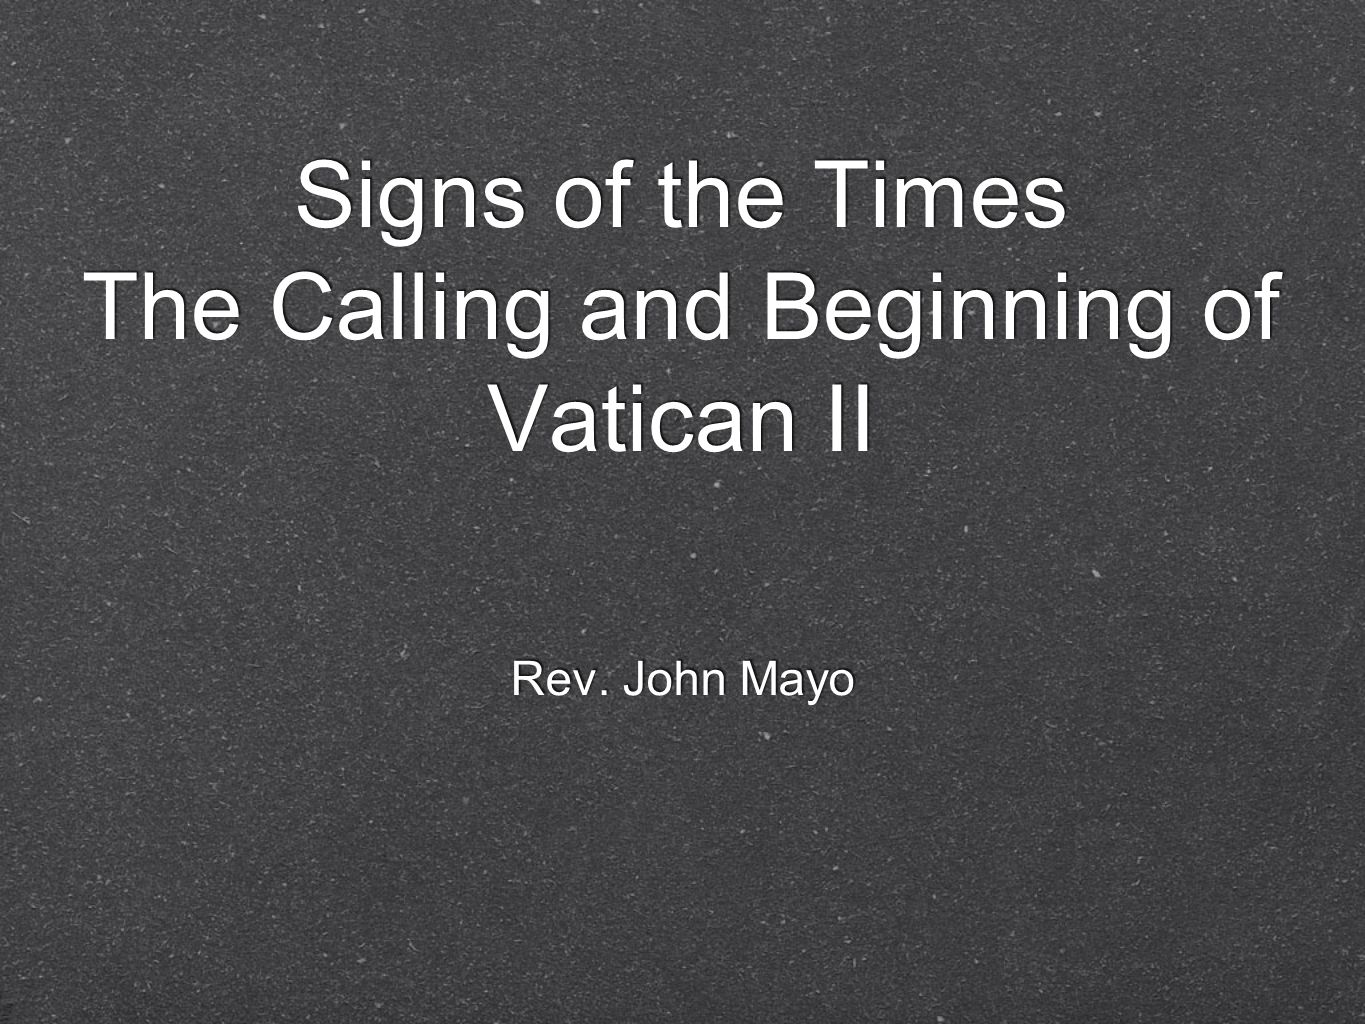 Signs of the Times The Calling and Beginning of Vatican II